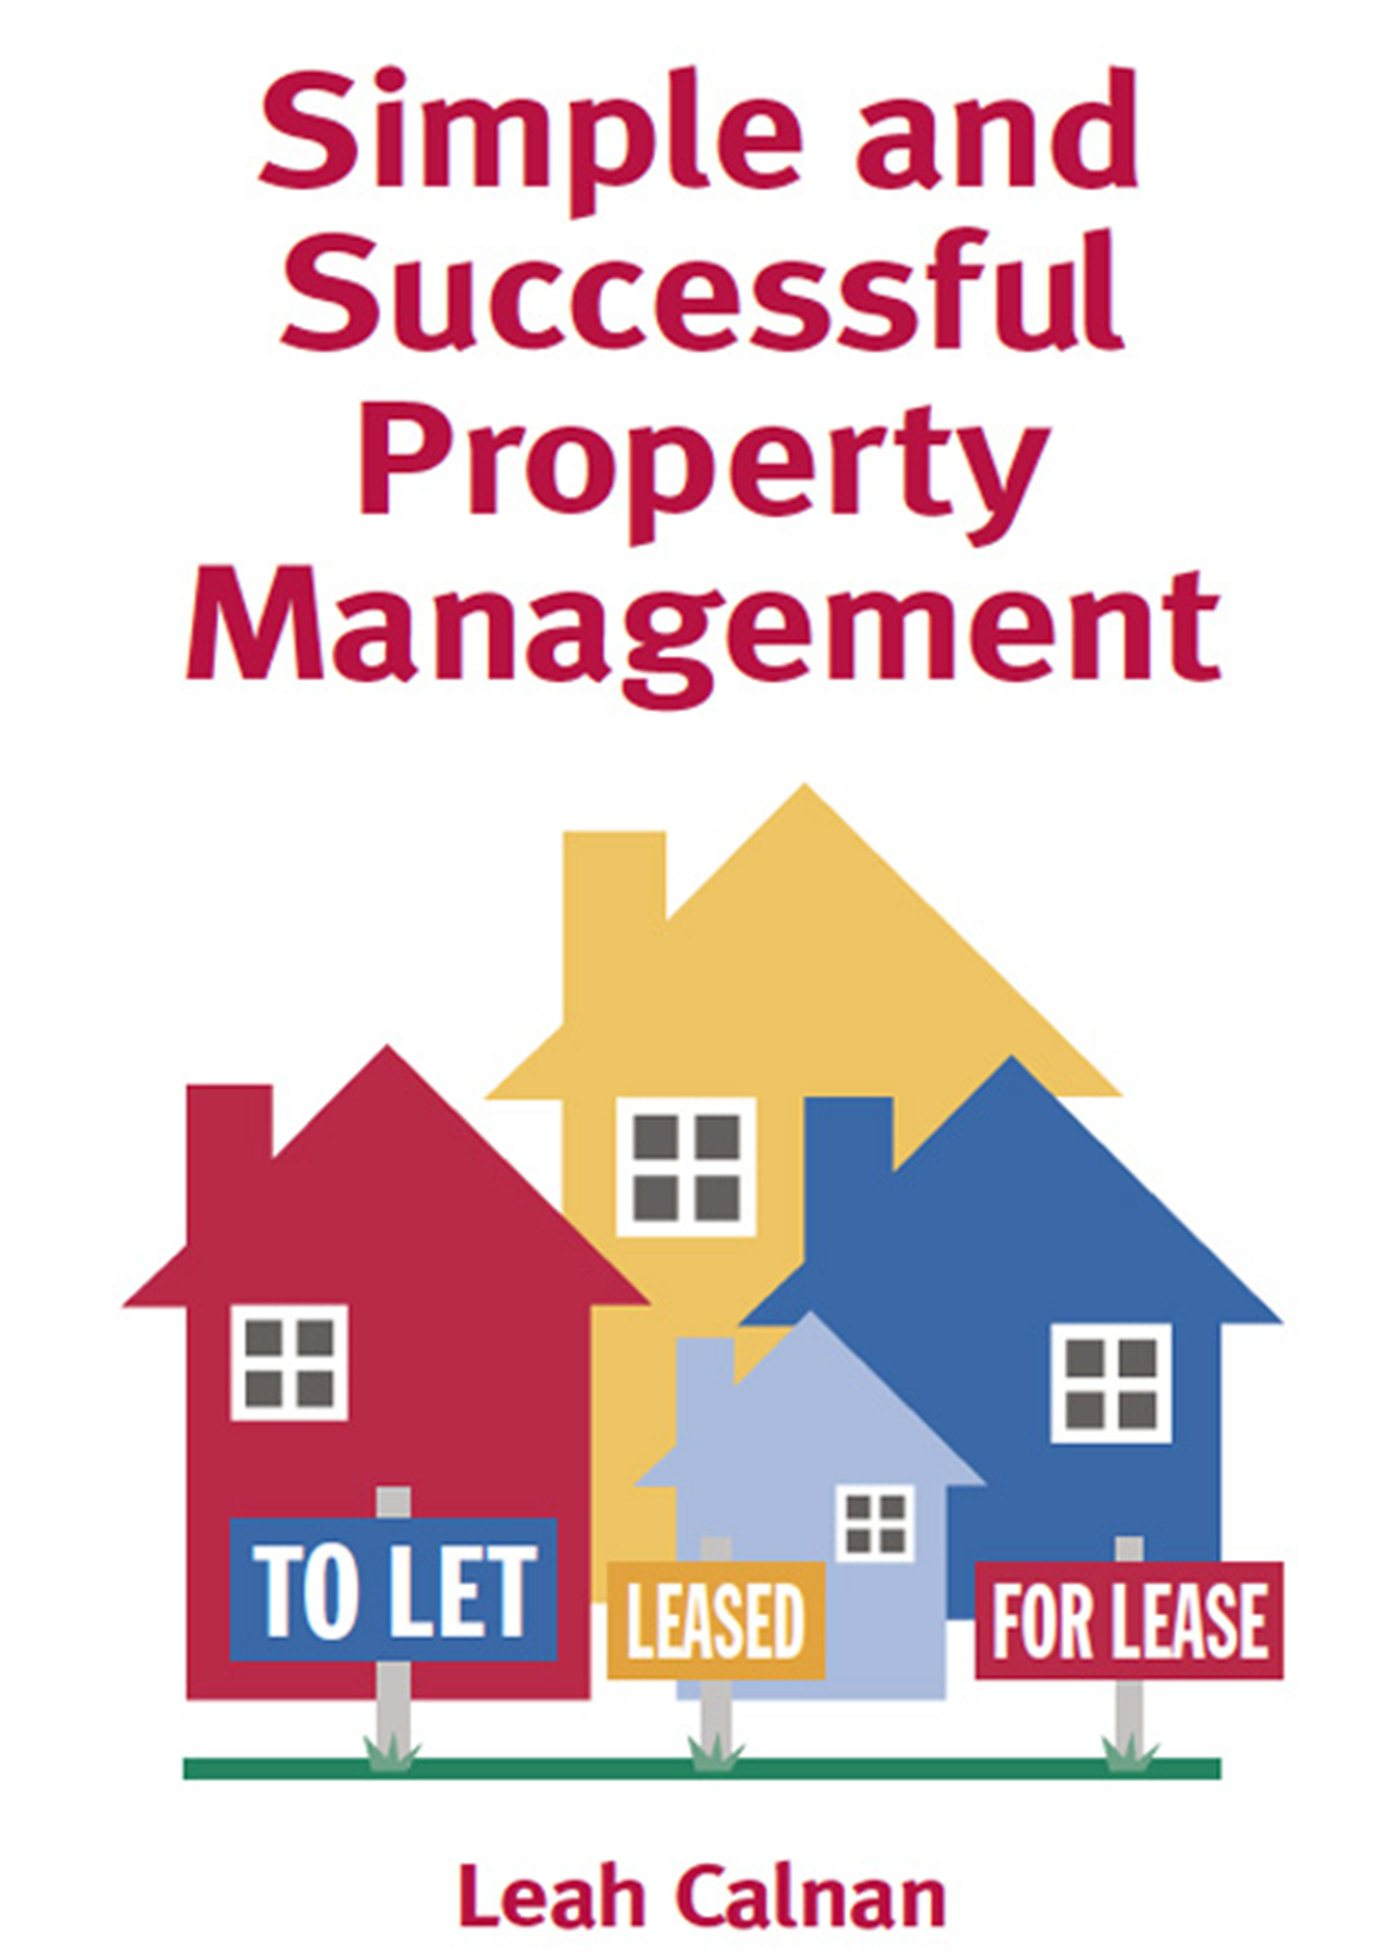 Simple and Successful Property Management By: Leah Calnan